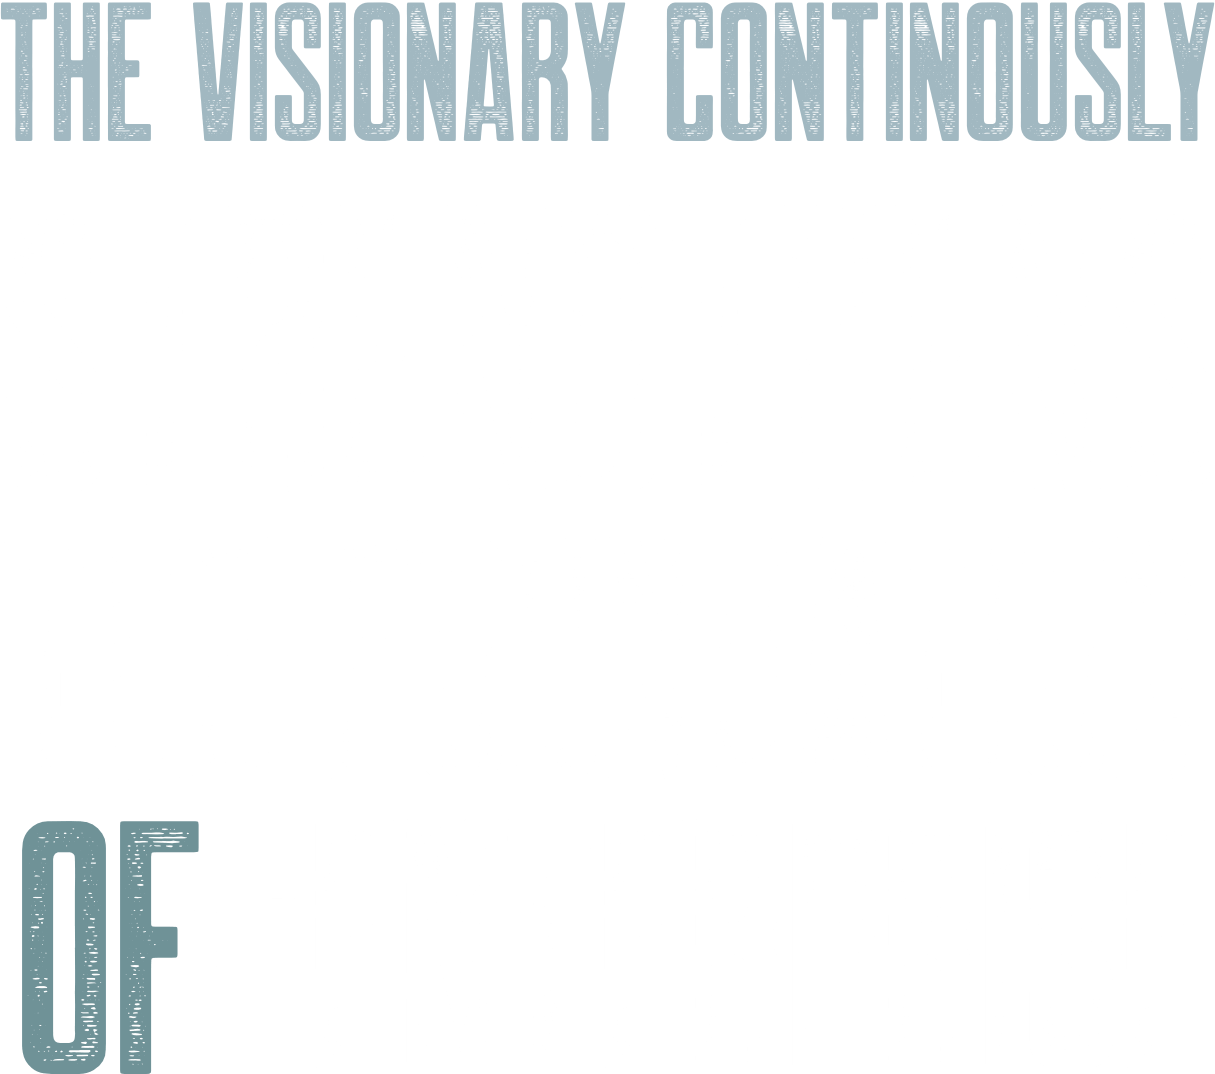 The Visionary Continously Strengthens the vessel